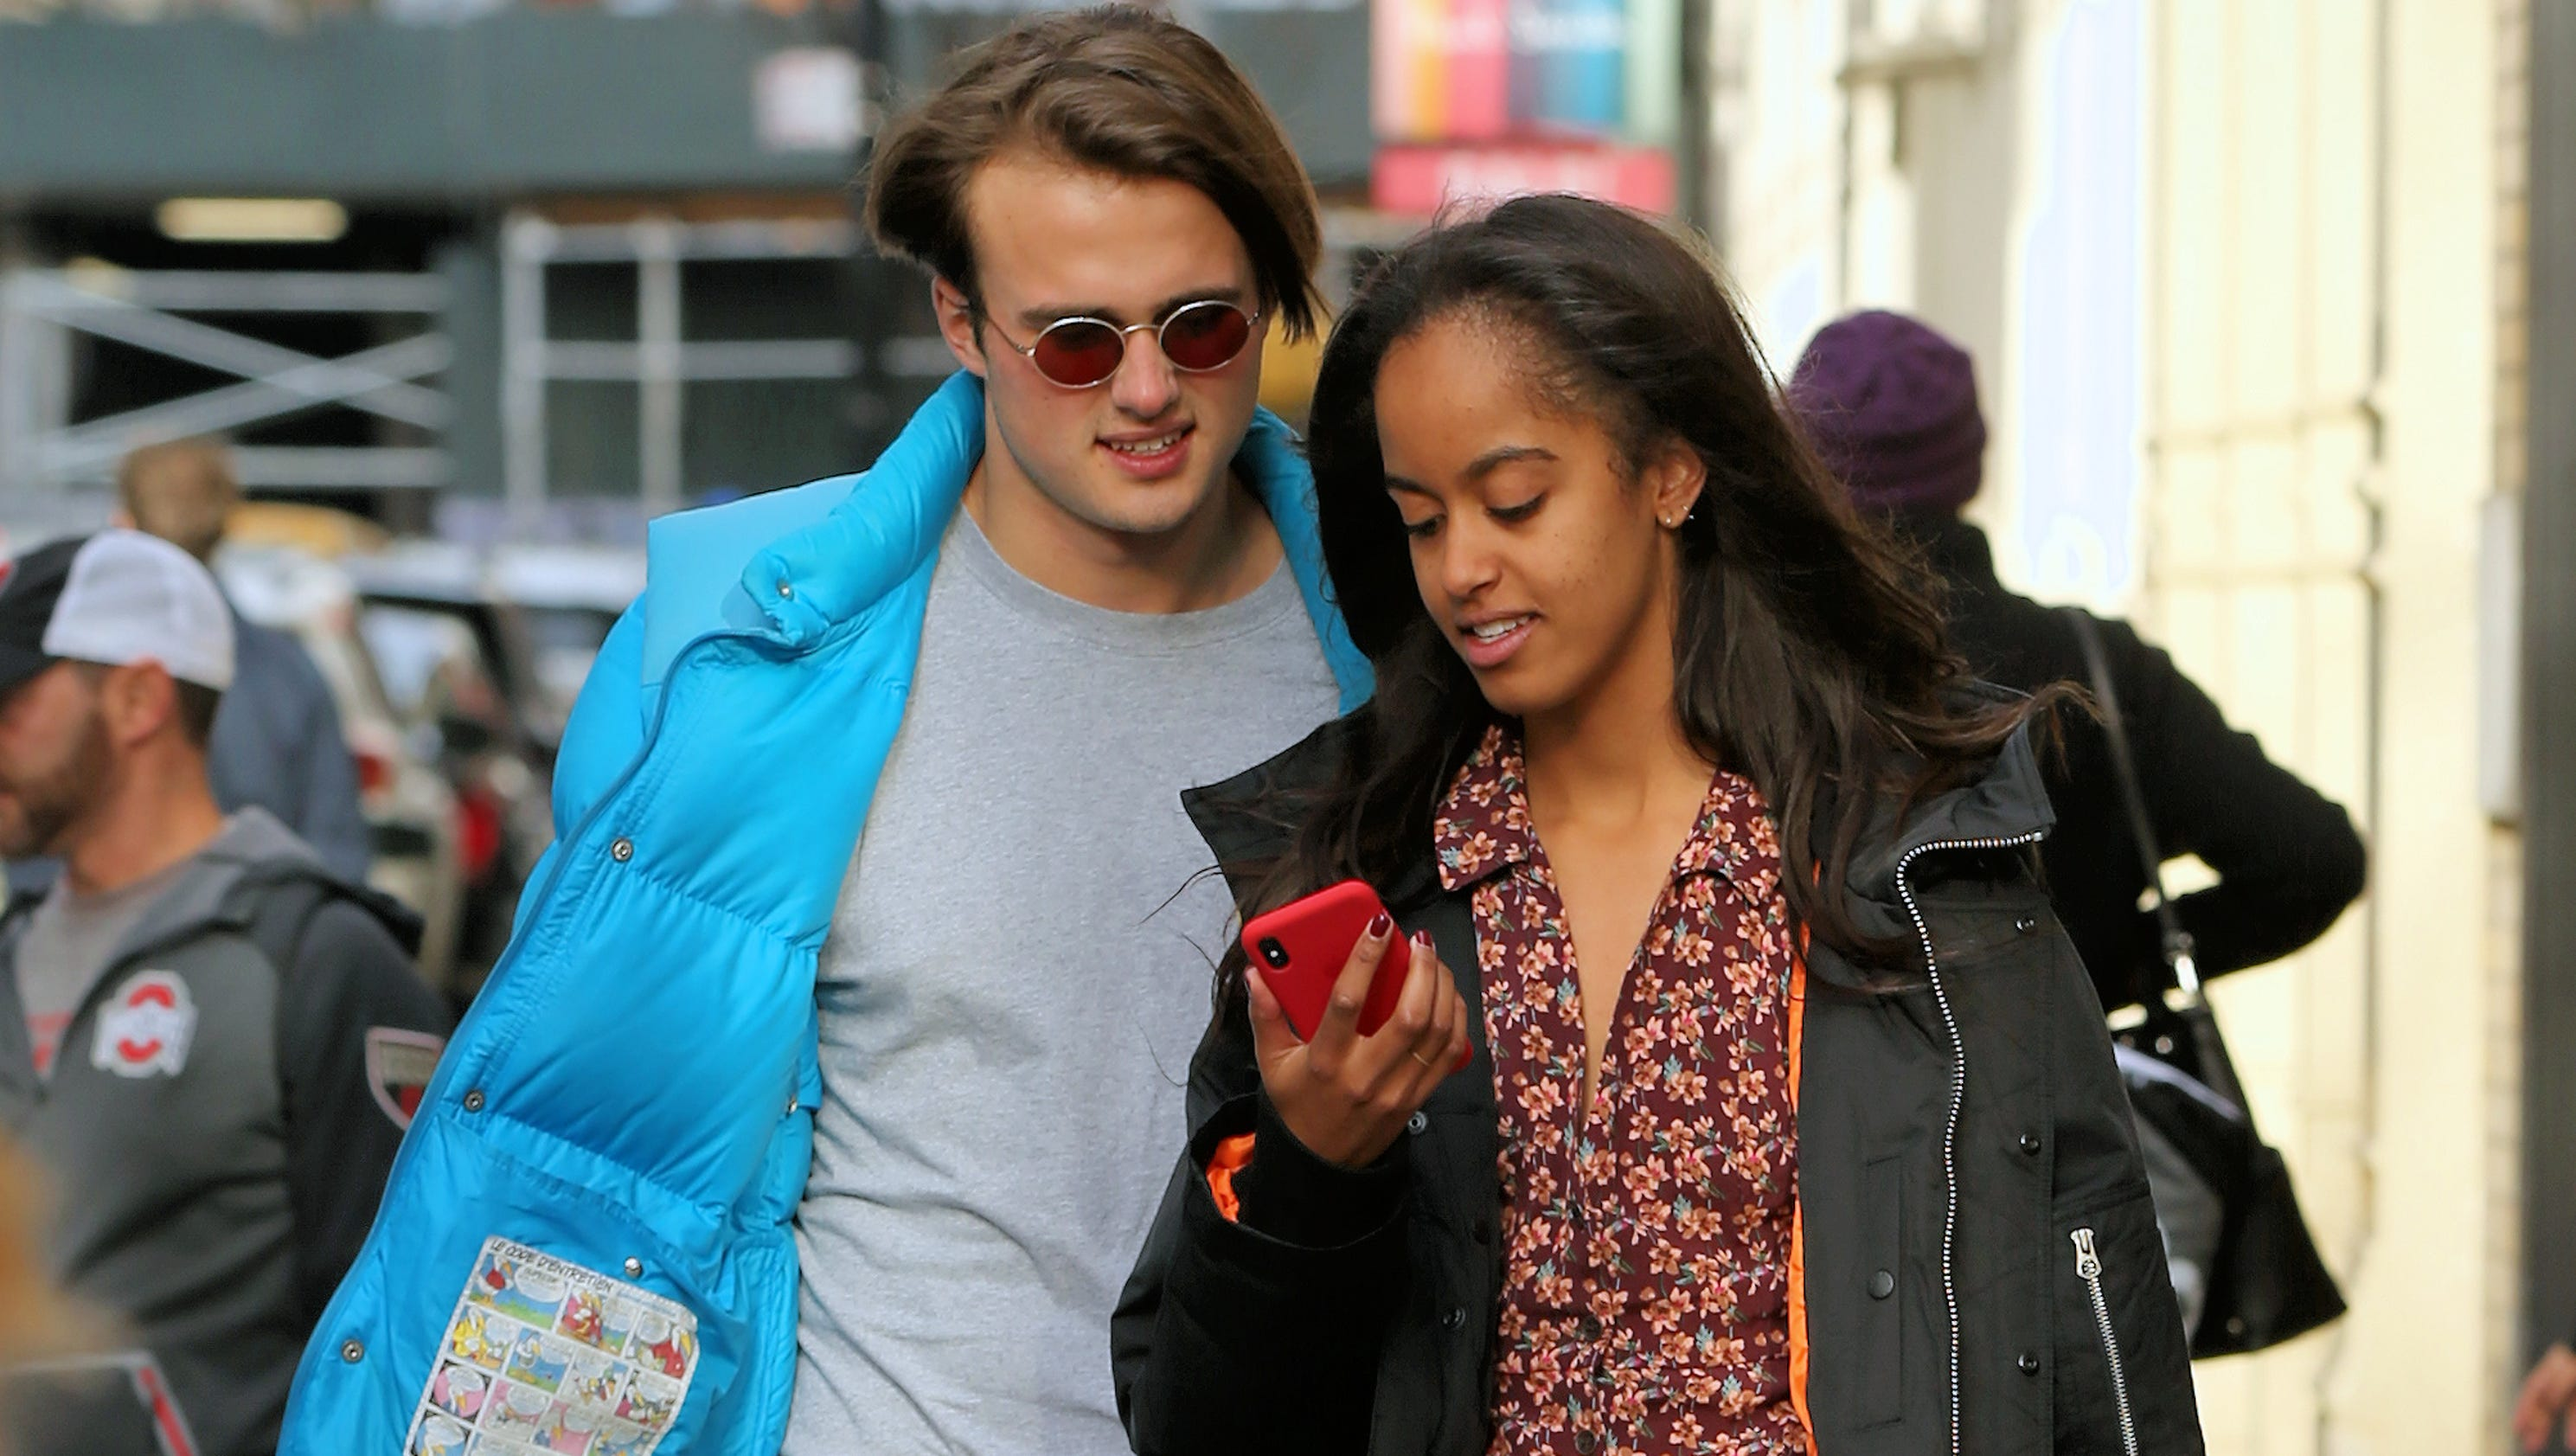 Malia Obama steps out with Rory Farquharson, her alleged ...